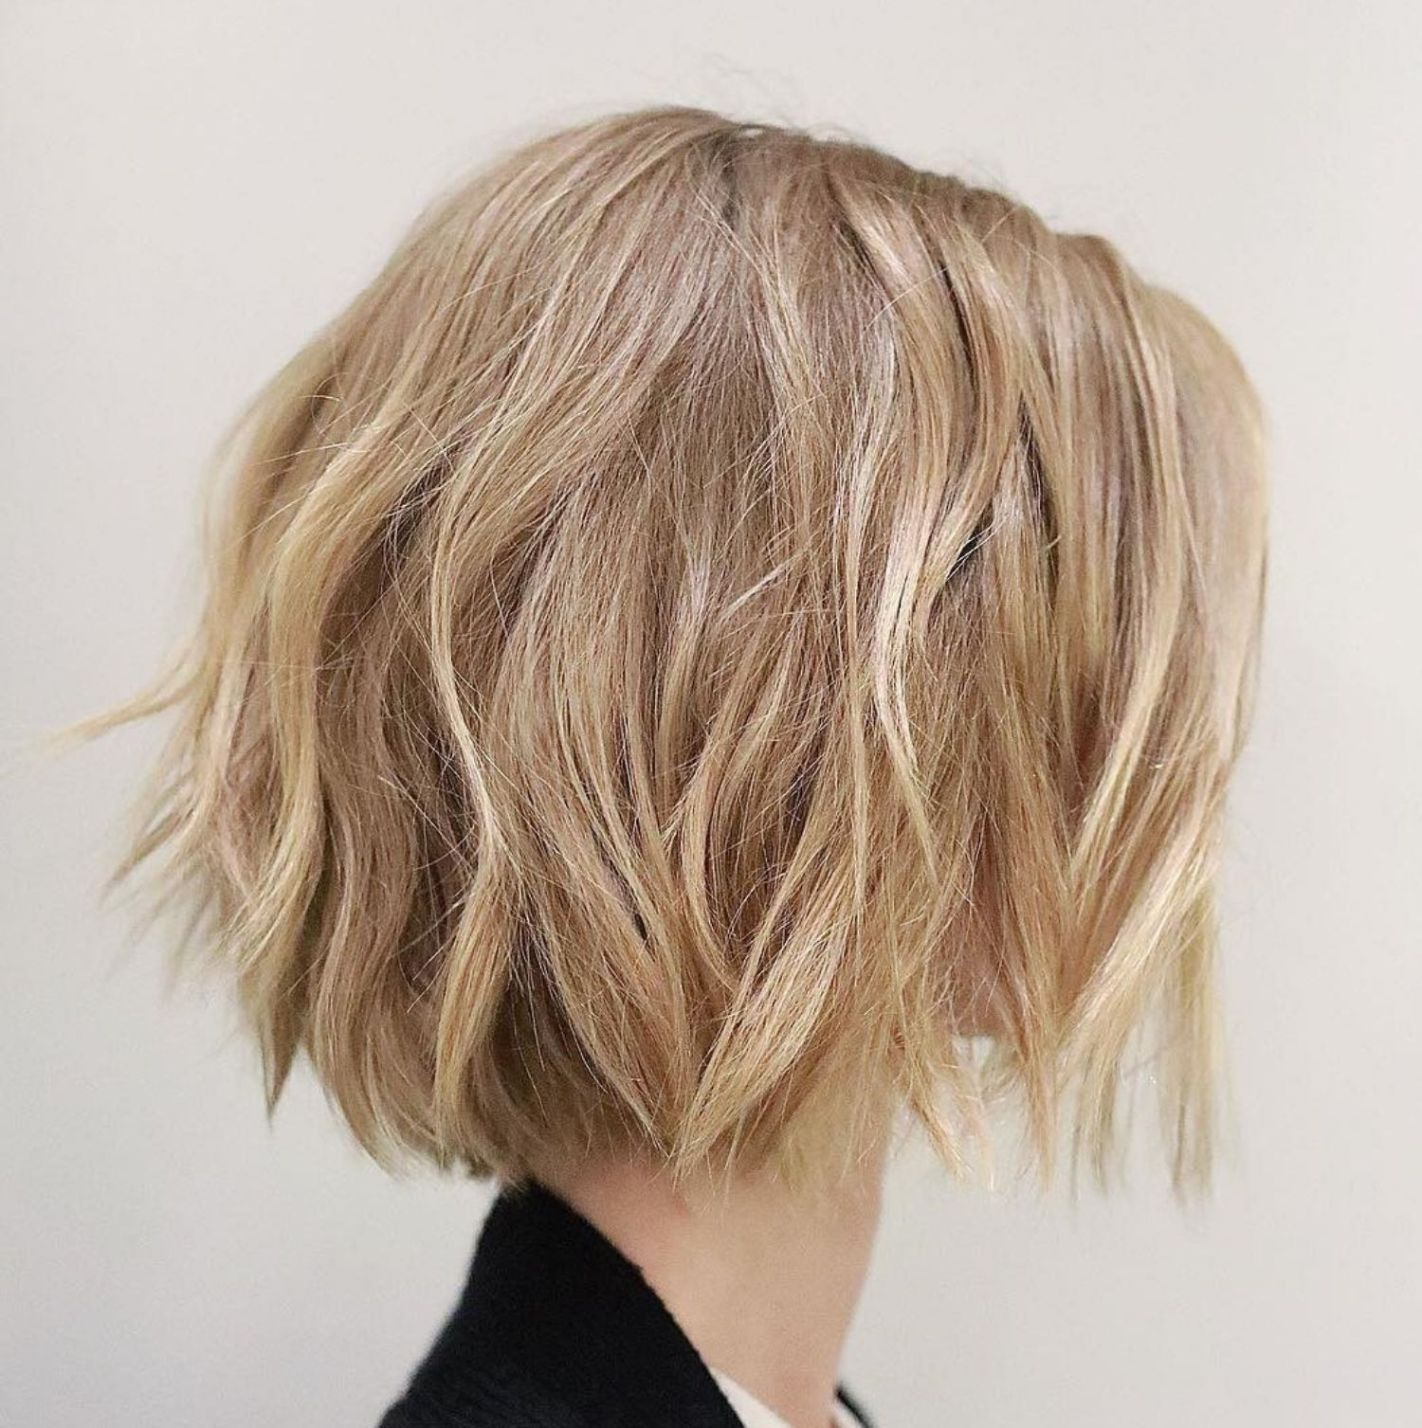 60 messy bob hairstyles for your trendy casual looks | hair